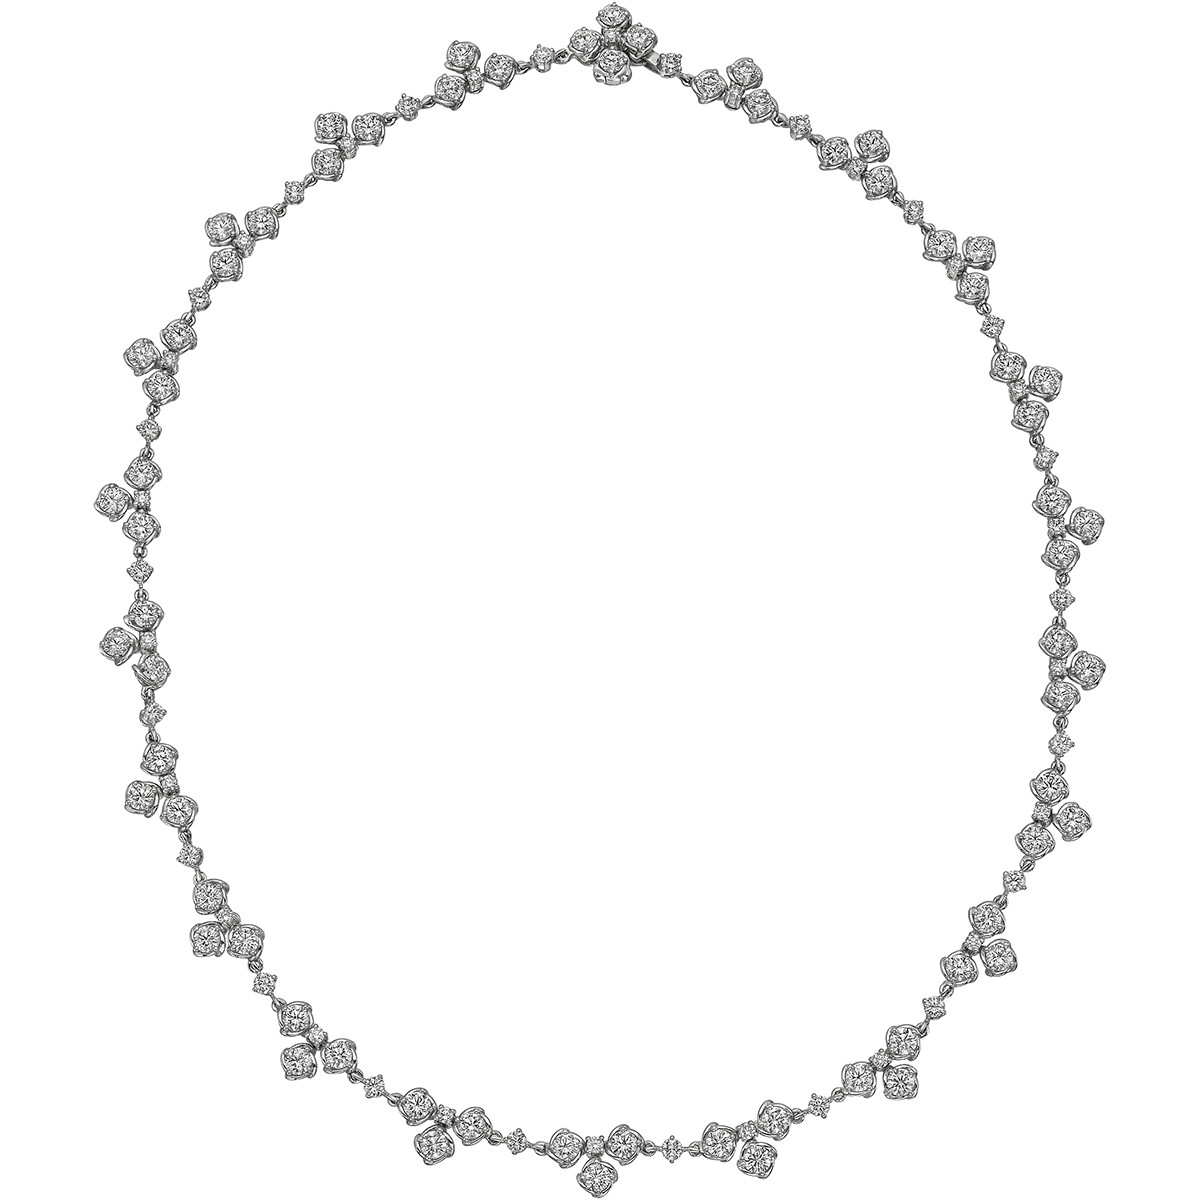 18k White Gold & Diamond Cluster Chain Necklace